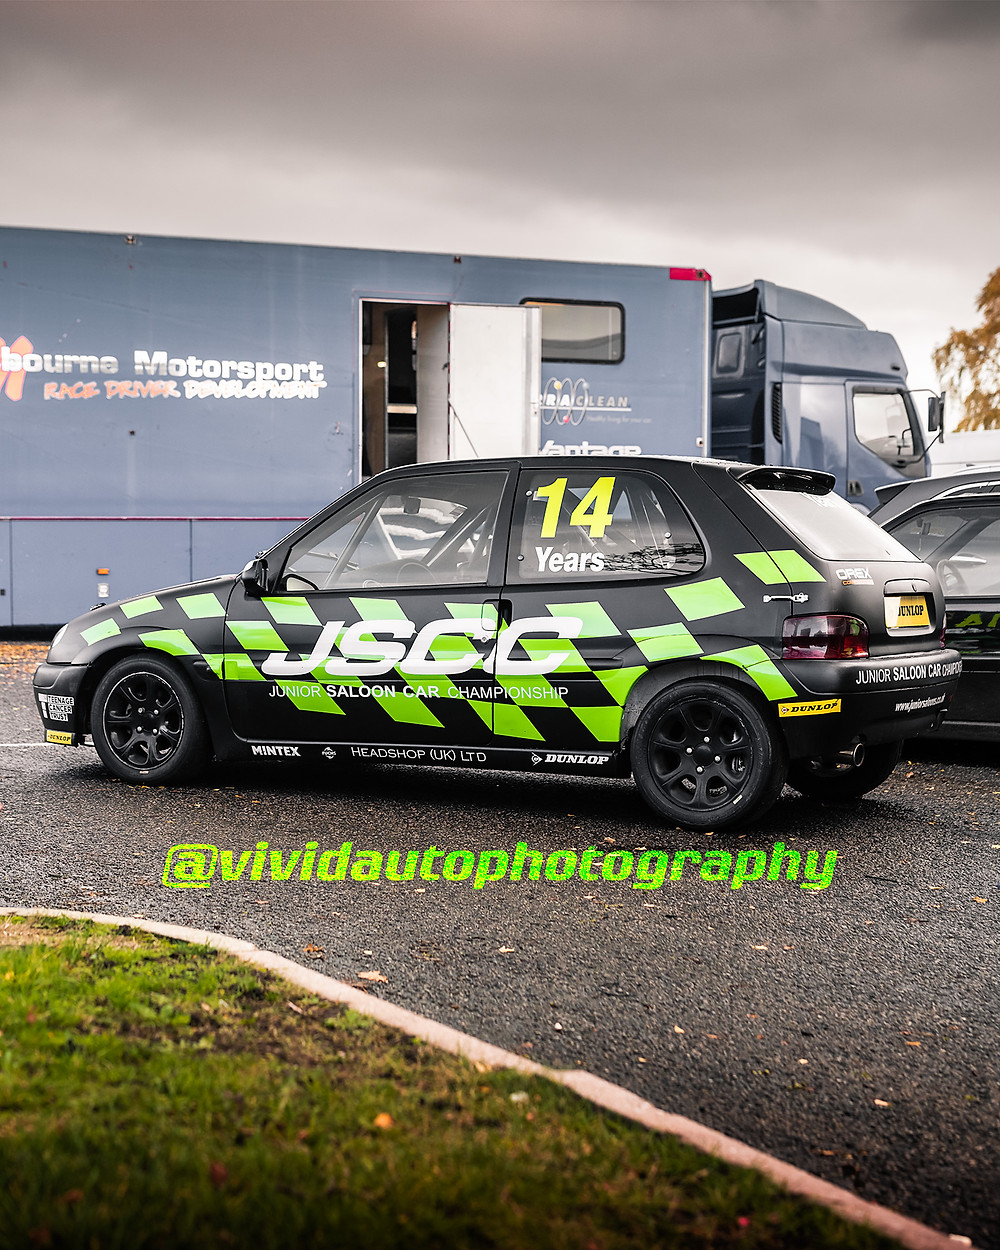 Junior Saloon Car Champioship | Citroen Saxo | Oulton Park